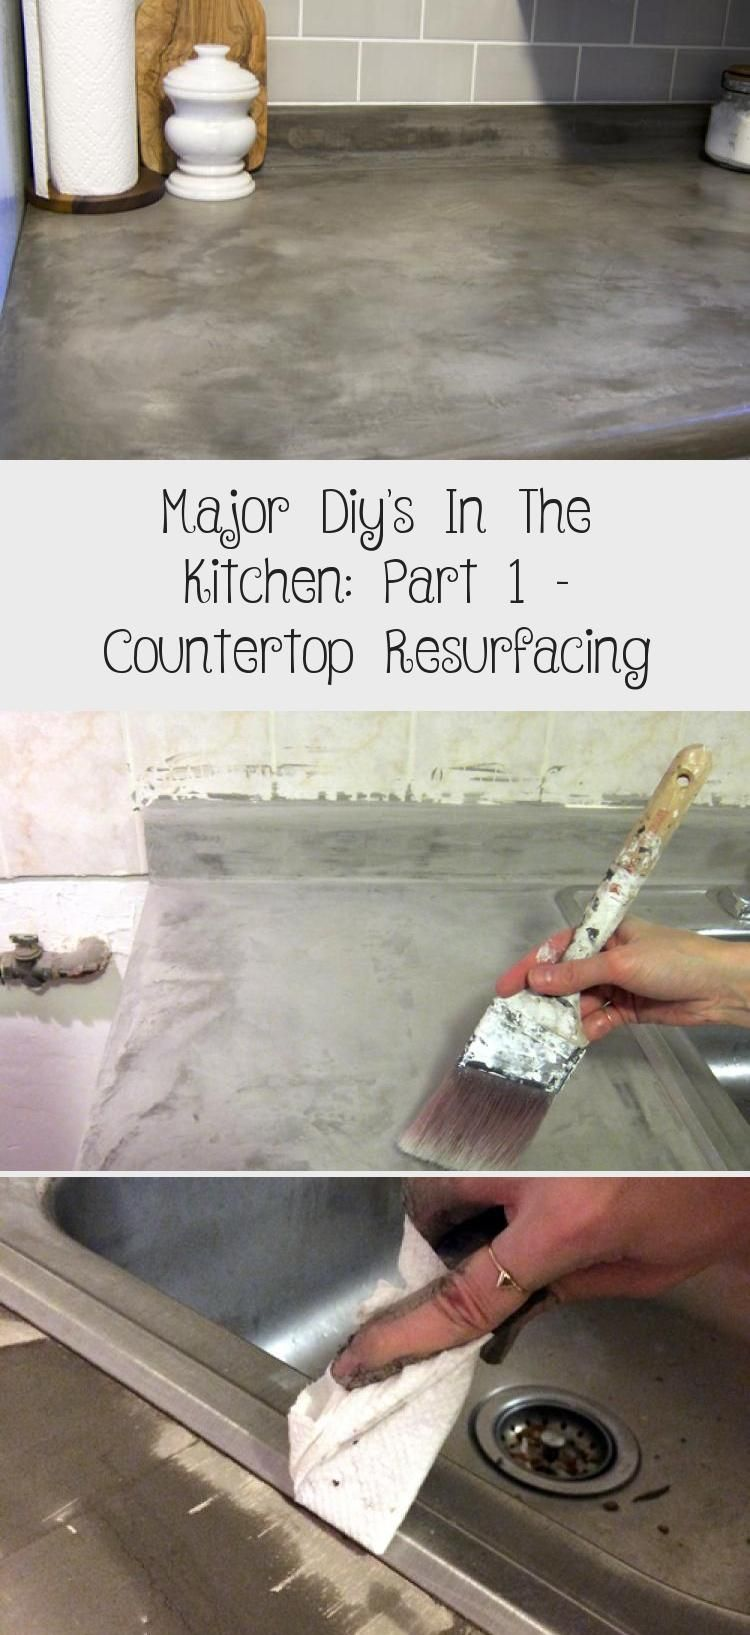 Major Diy's In The Kitchen: Part 1 - Countertop ...